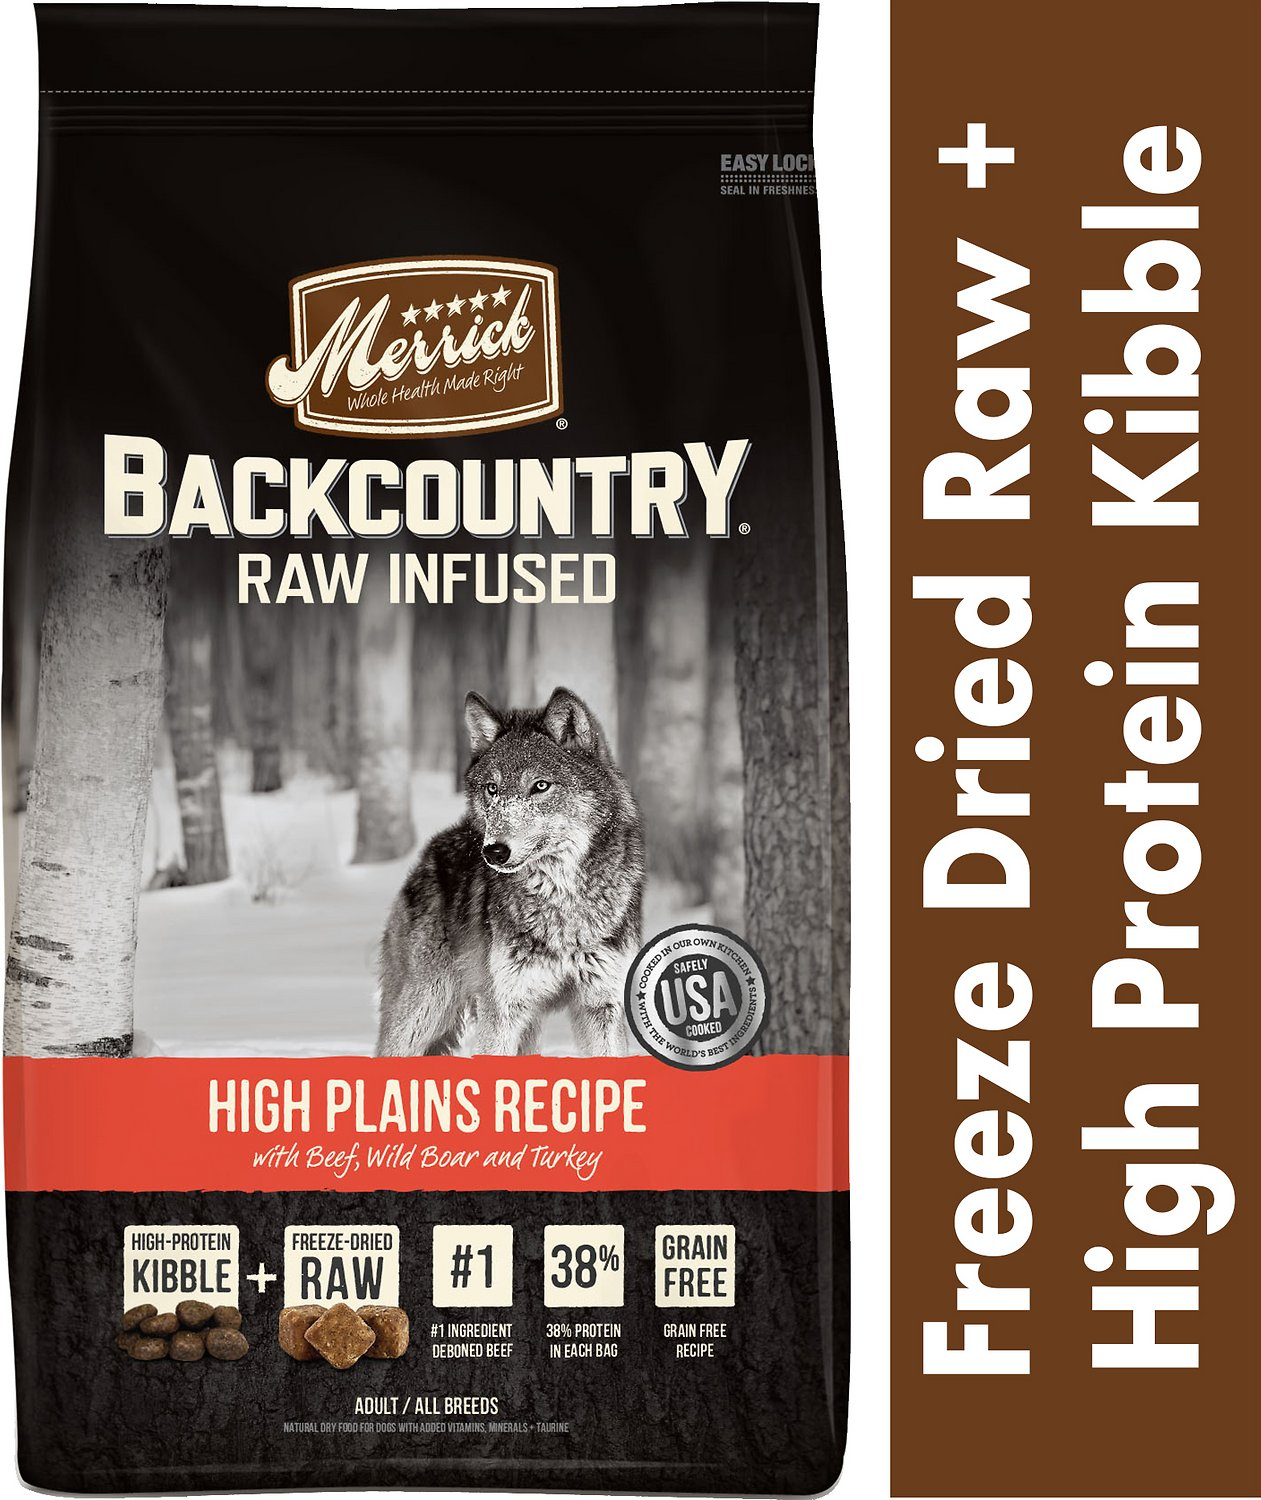 Merrick Backcountry Raw Infused High Plains Recipe with Beef, Wild Boar, & Turkey Grain-Free Dry Dog Food Image